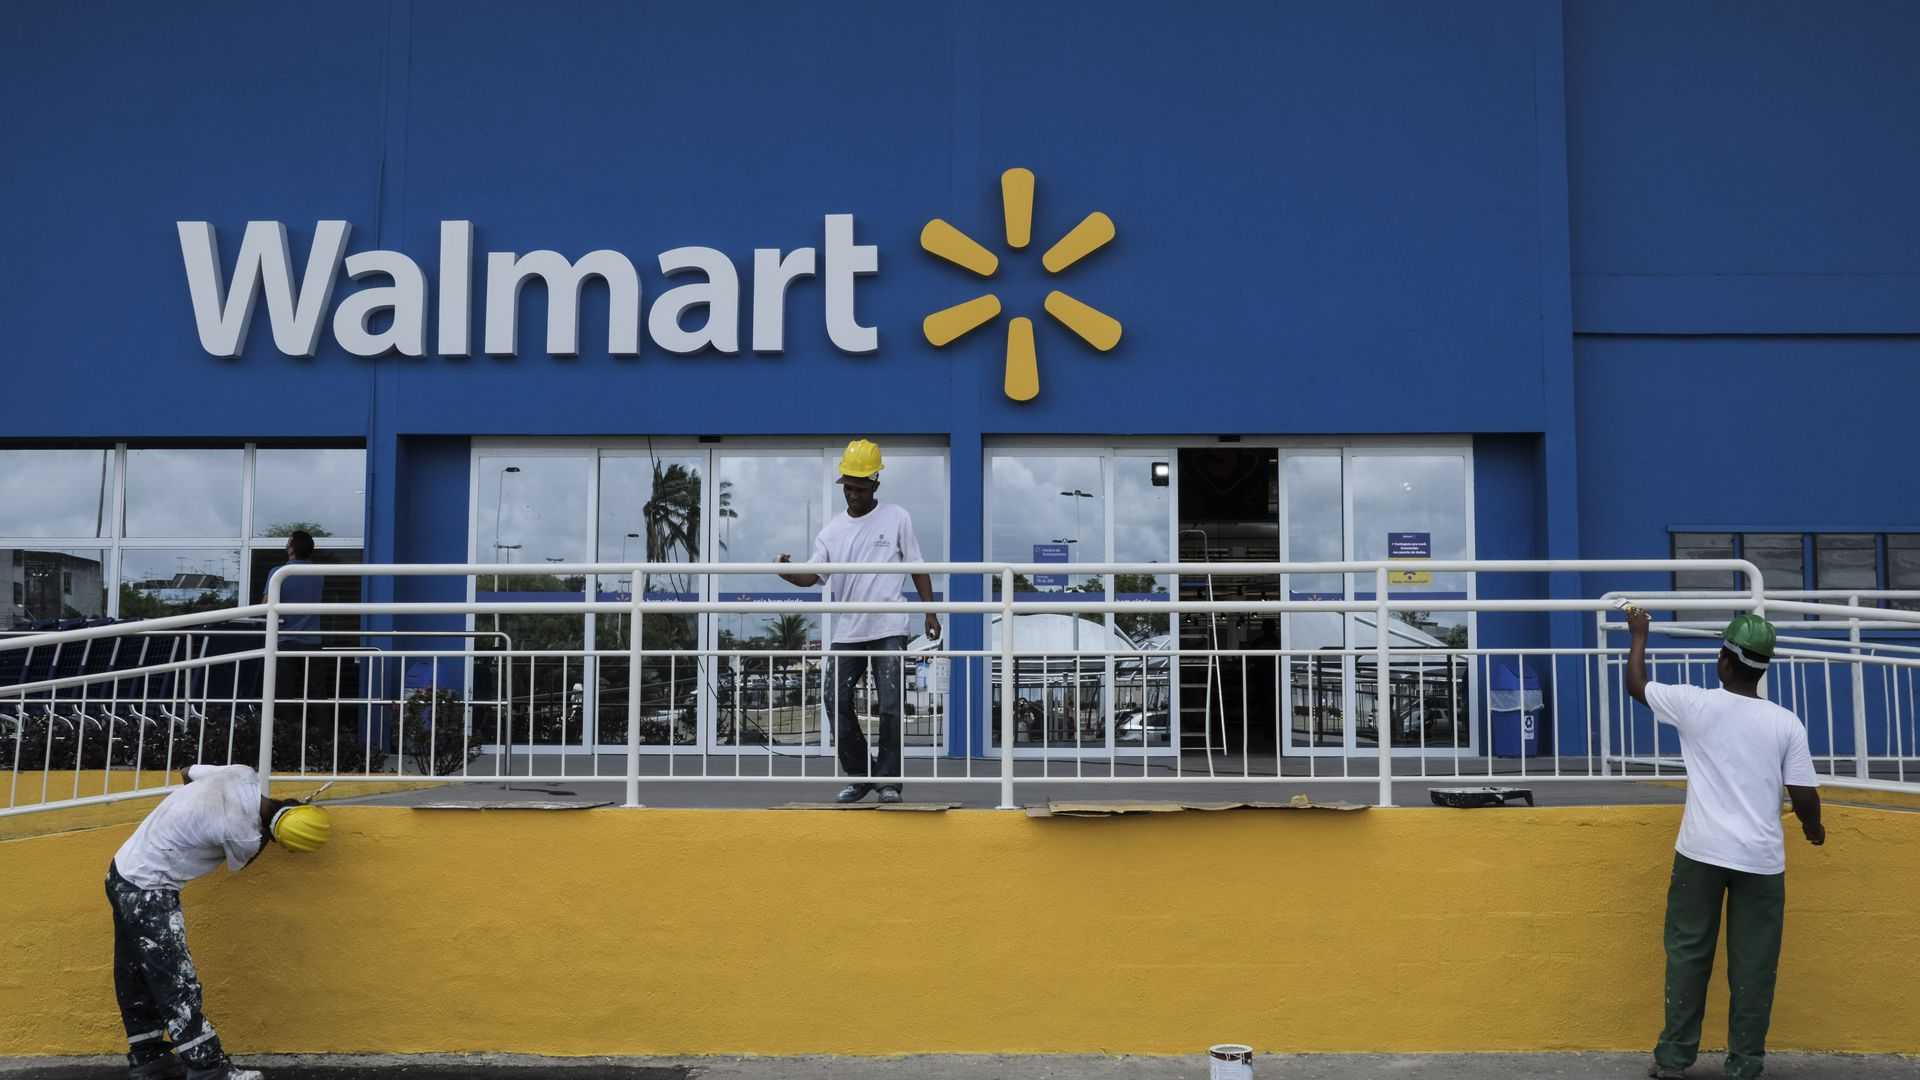 Walmart agrees to $282 million settlement in corruption lawsuit - Axios